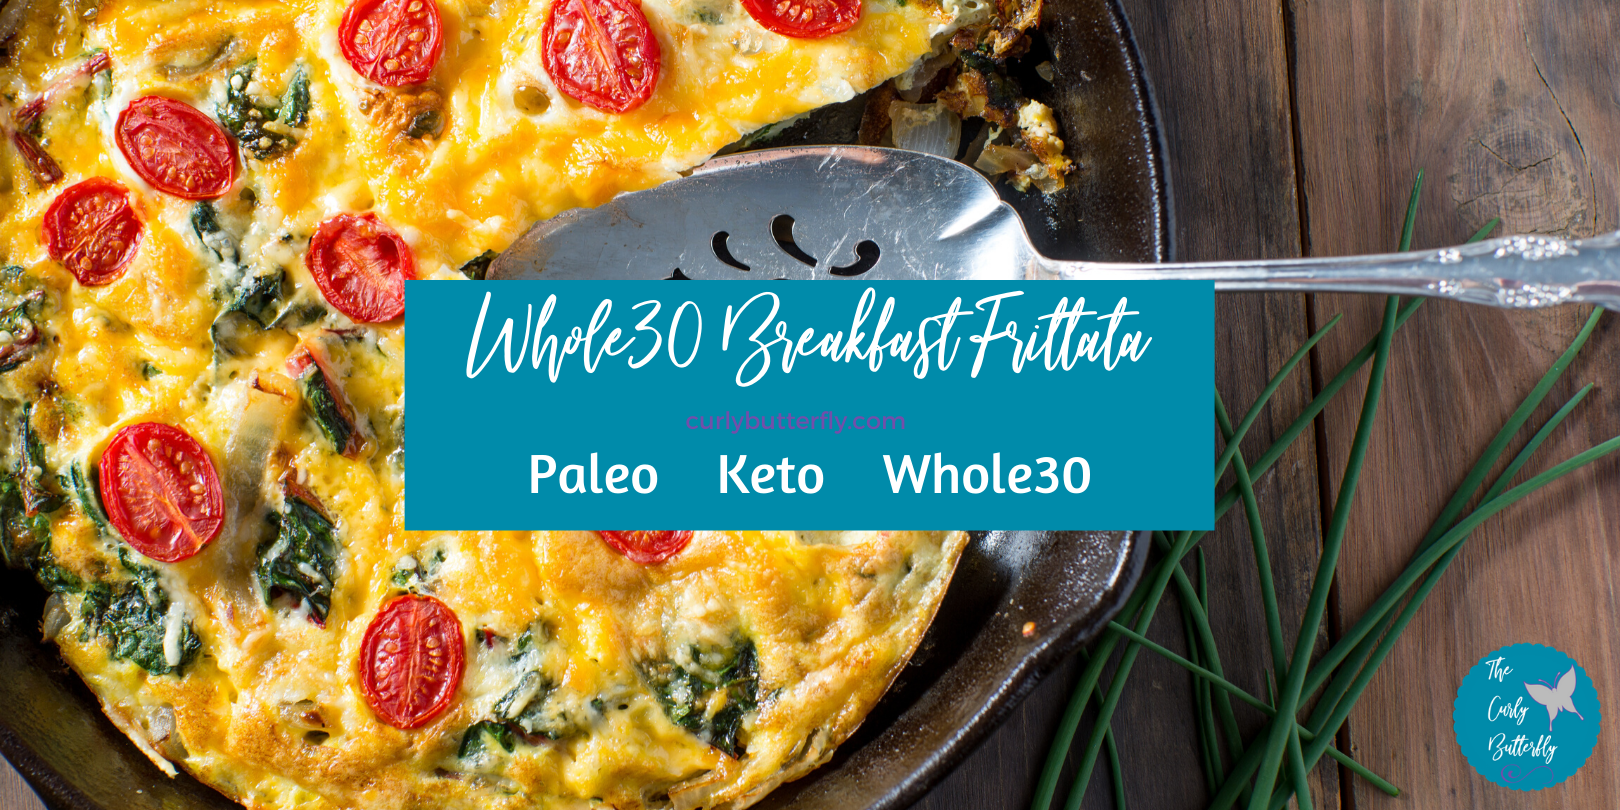 Background of a frittata in a cast iron skillet with the title Whole 30 Breakfast Frittata, Paleo, Keto, Whole30 layered on top